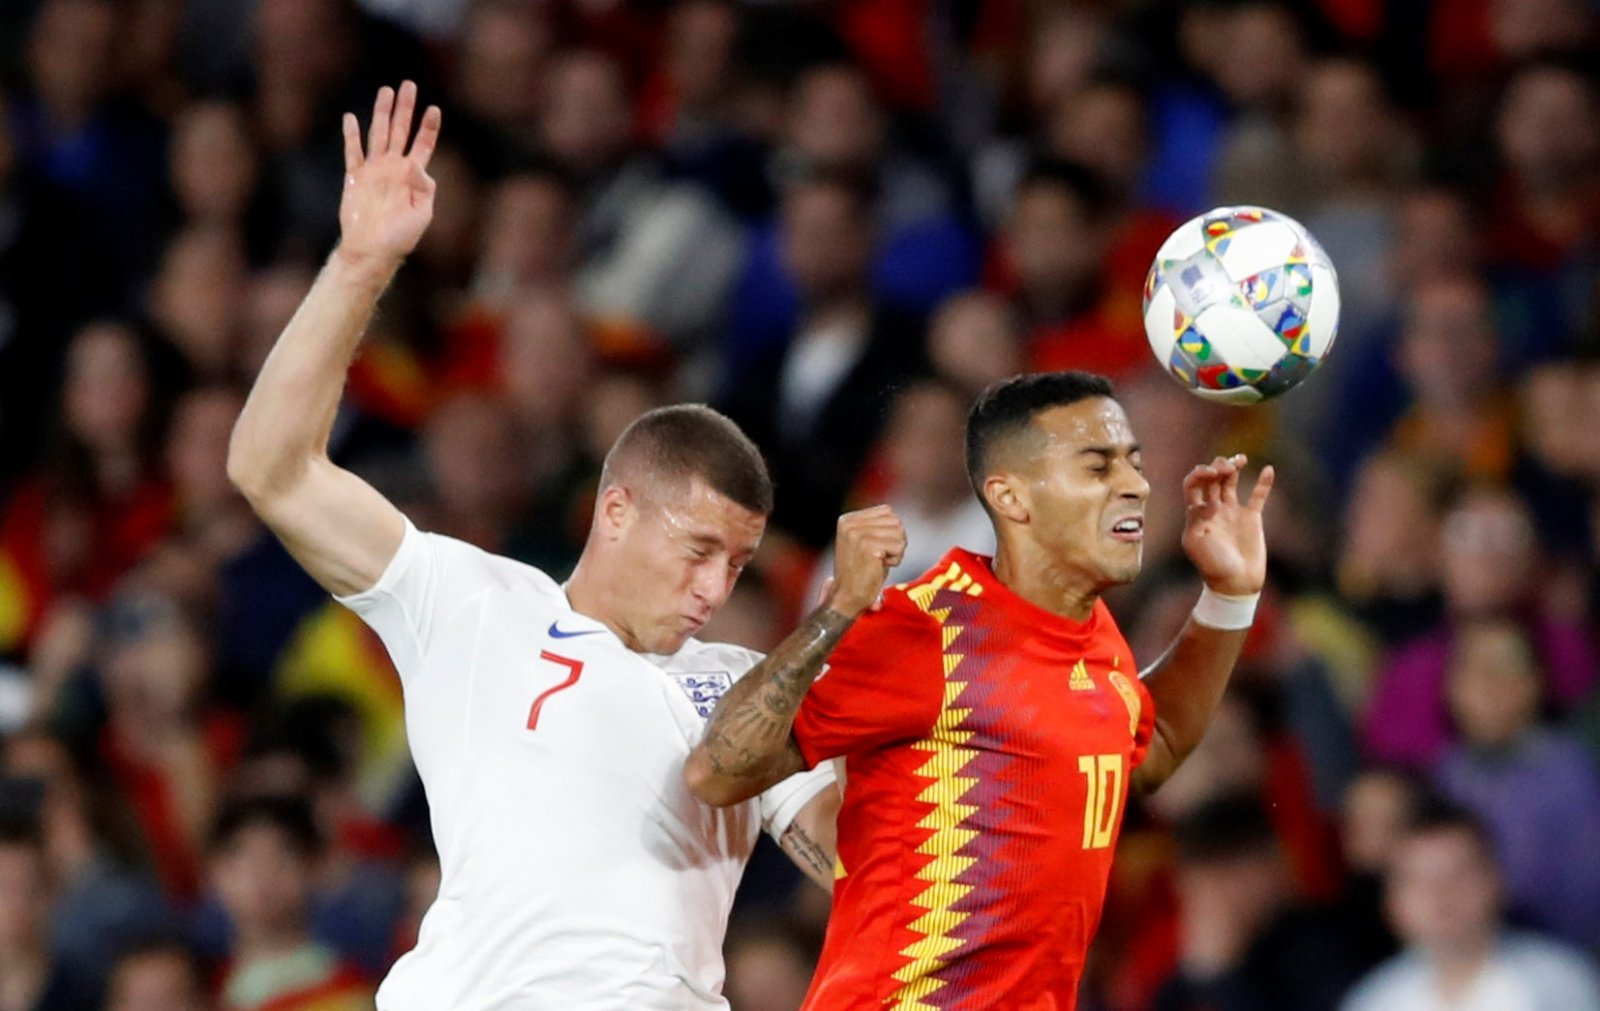 Ross Barkley's England display proved Tottenham missed a trick in January